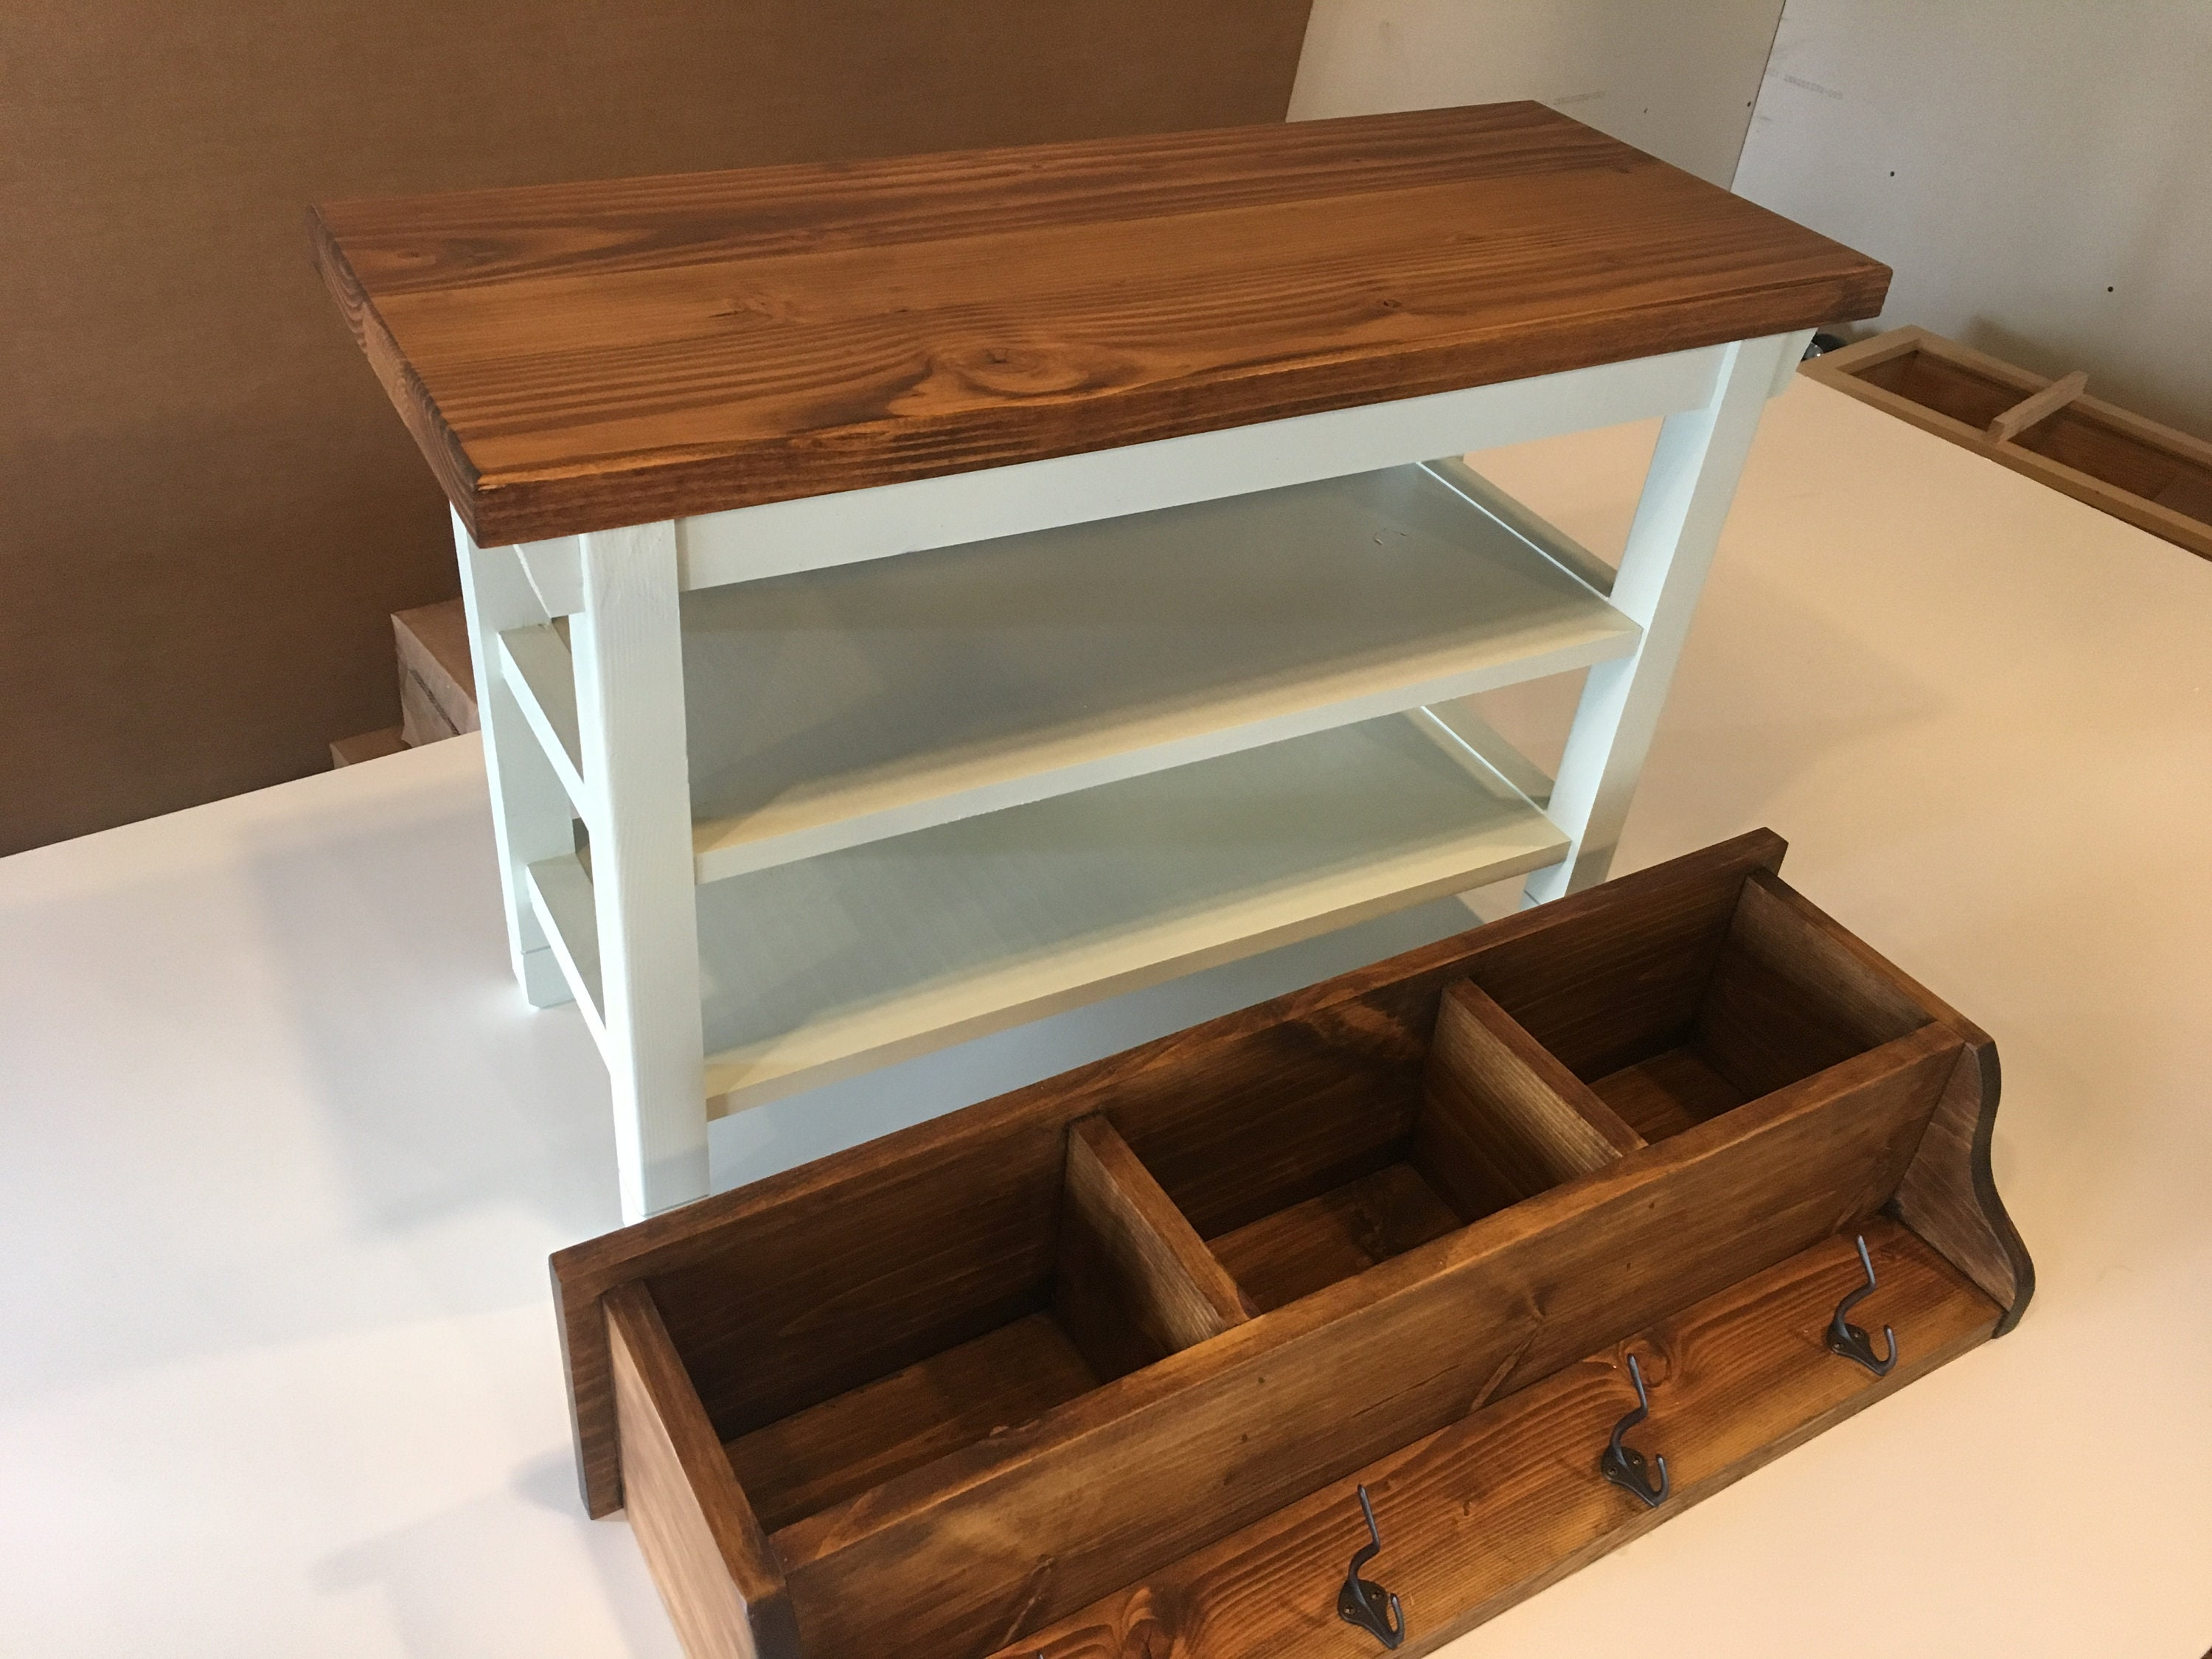 Excellent Hallway Mud Room Foyer Bench 34 Inch Reduced Width With Two Shoe Shelves And Matching Coat Rack Cubbies In Your Choice Of Colors Uwap Interior Chair Design Uwaporg